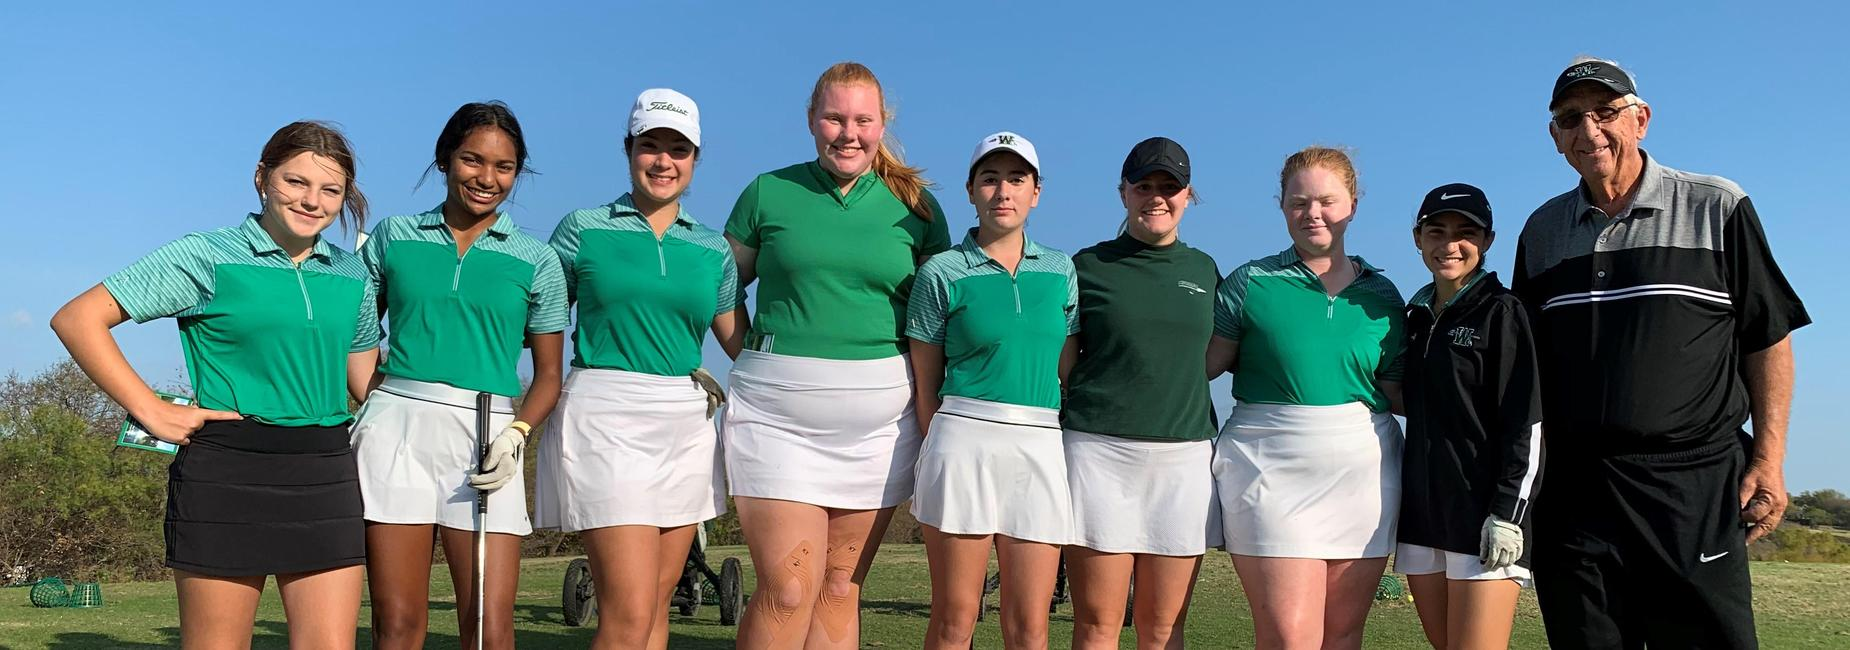 girls golf team and coach on the course